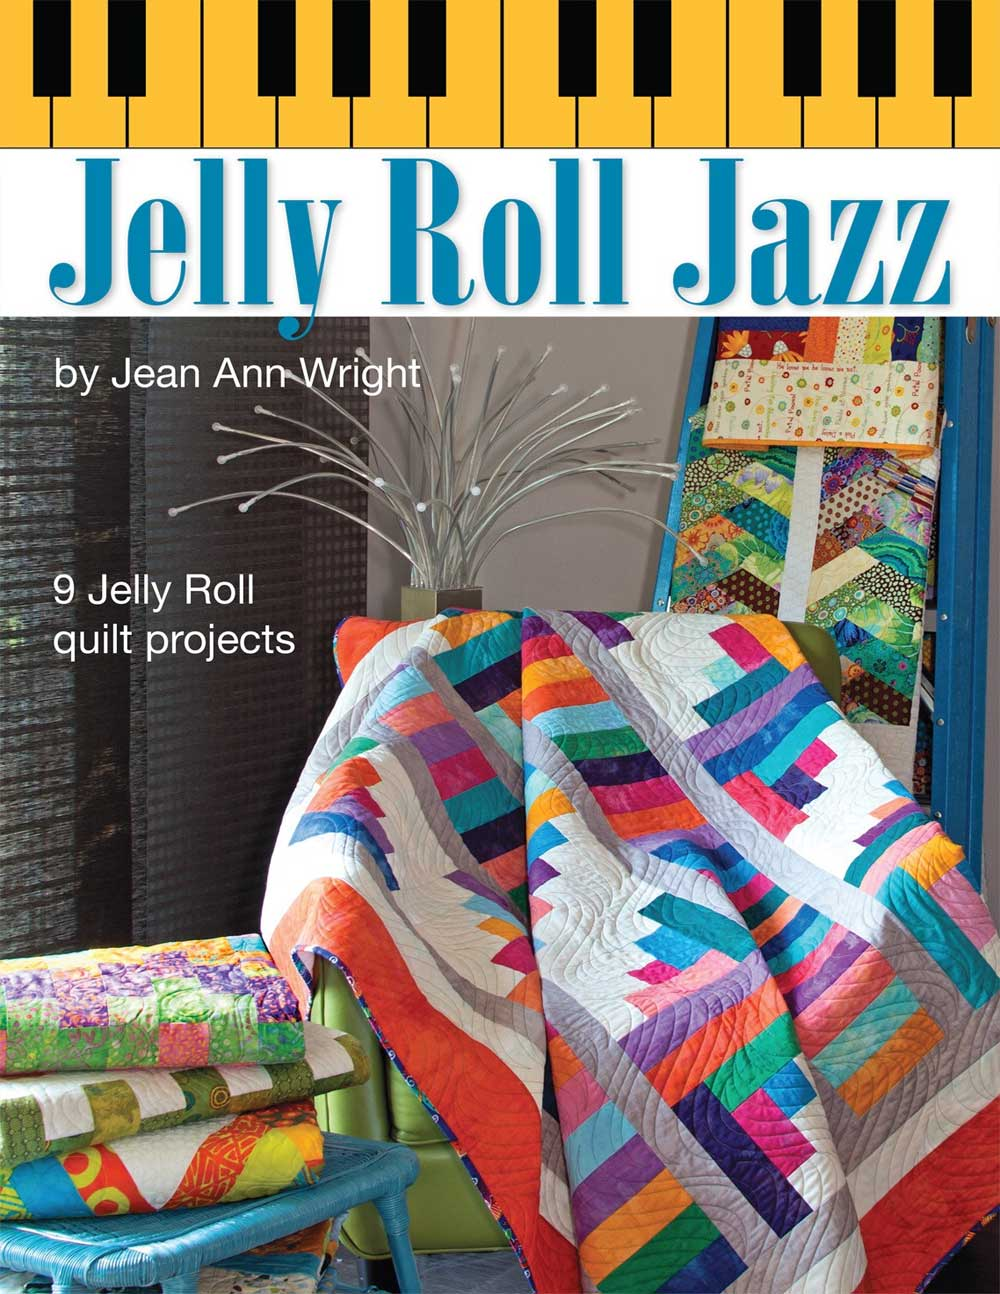 Jelly Roll Jazz - Quilting Book